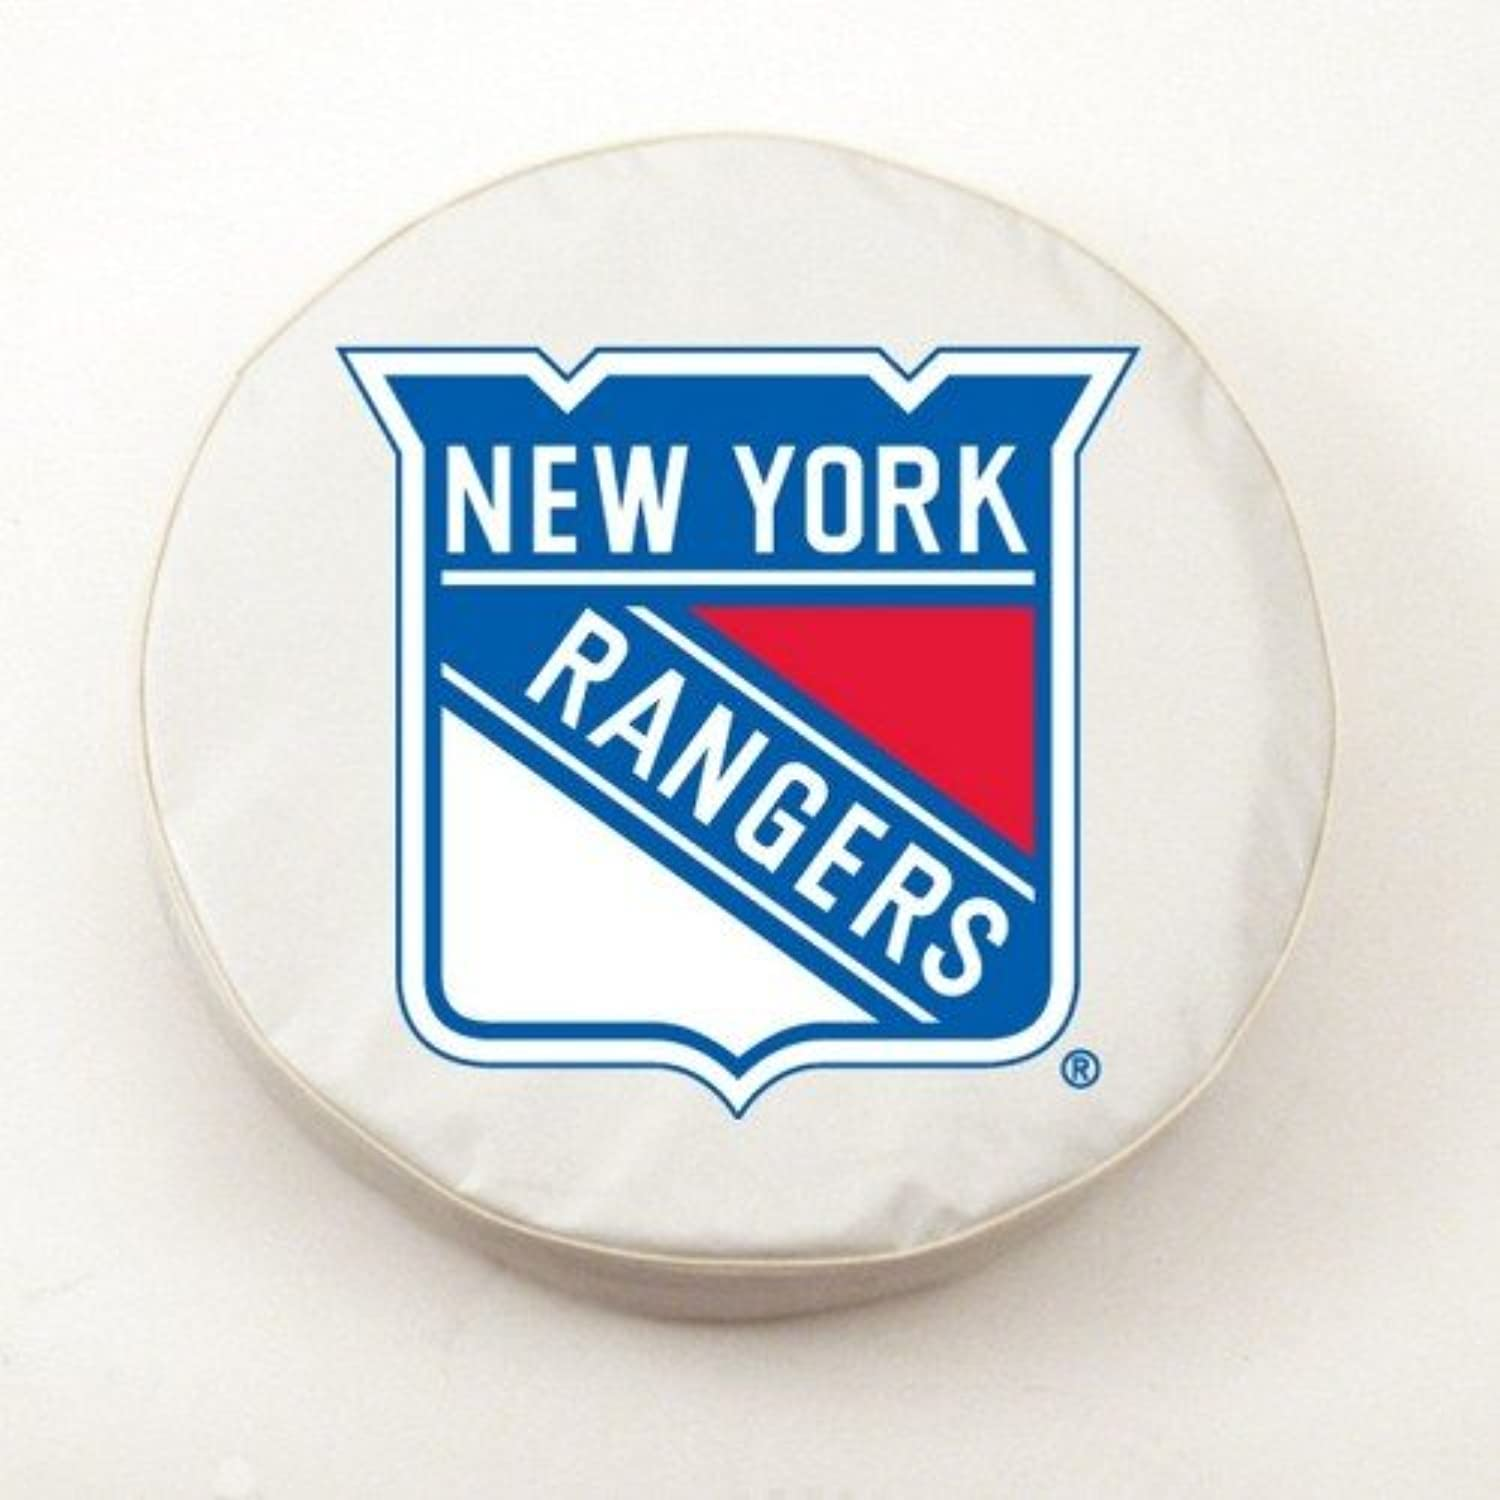 New York Rangers White Tire Cover, Small